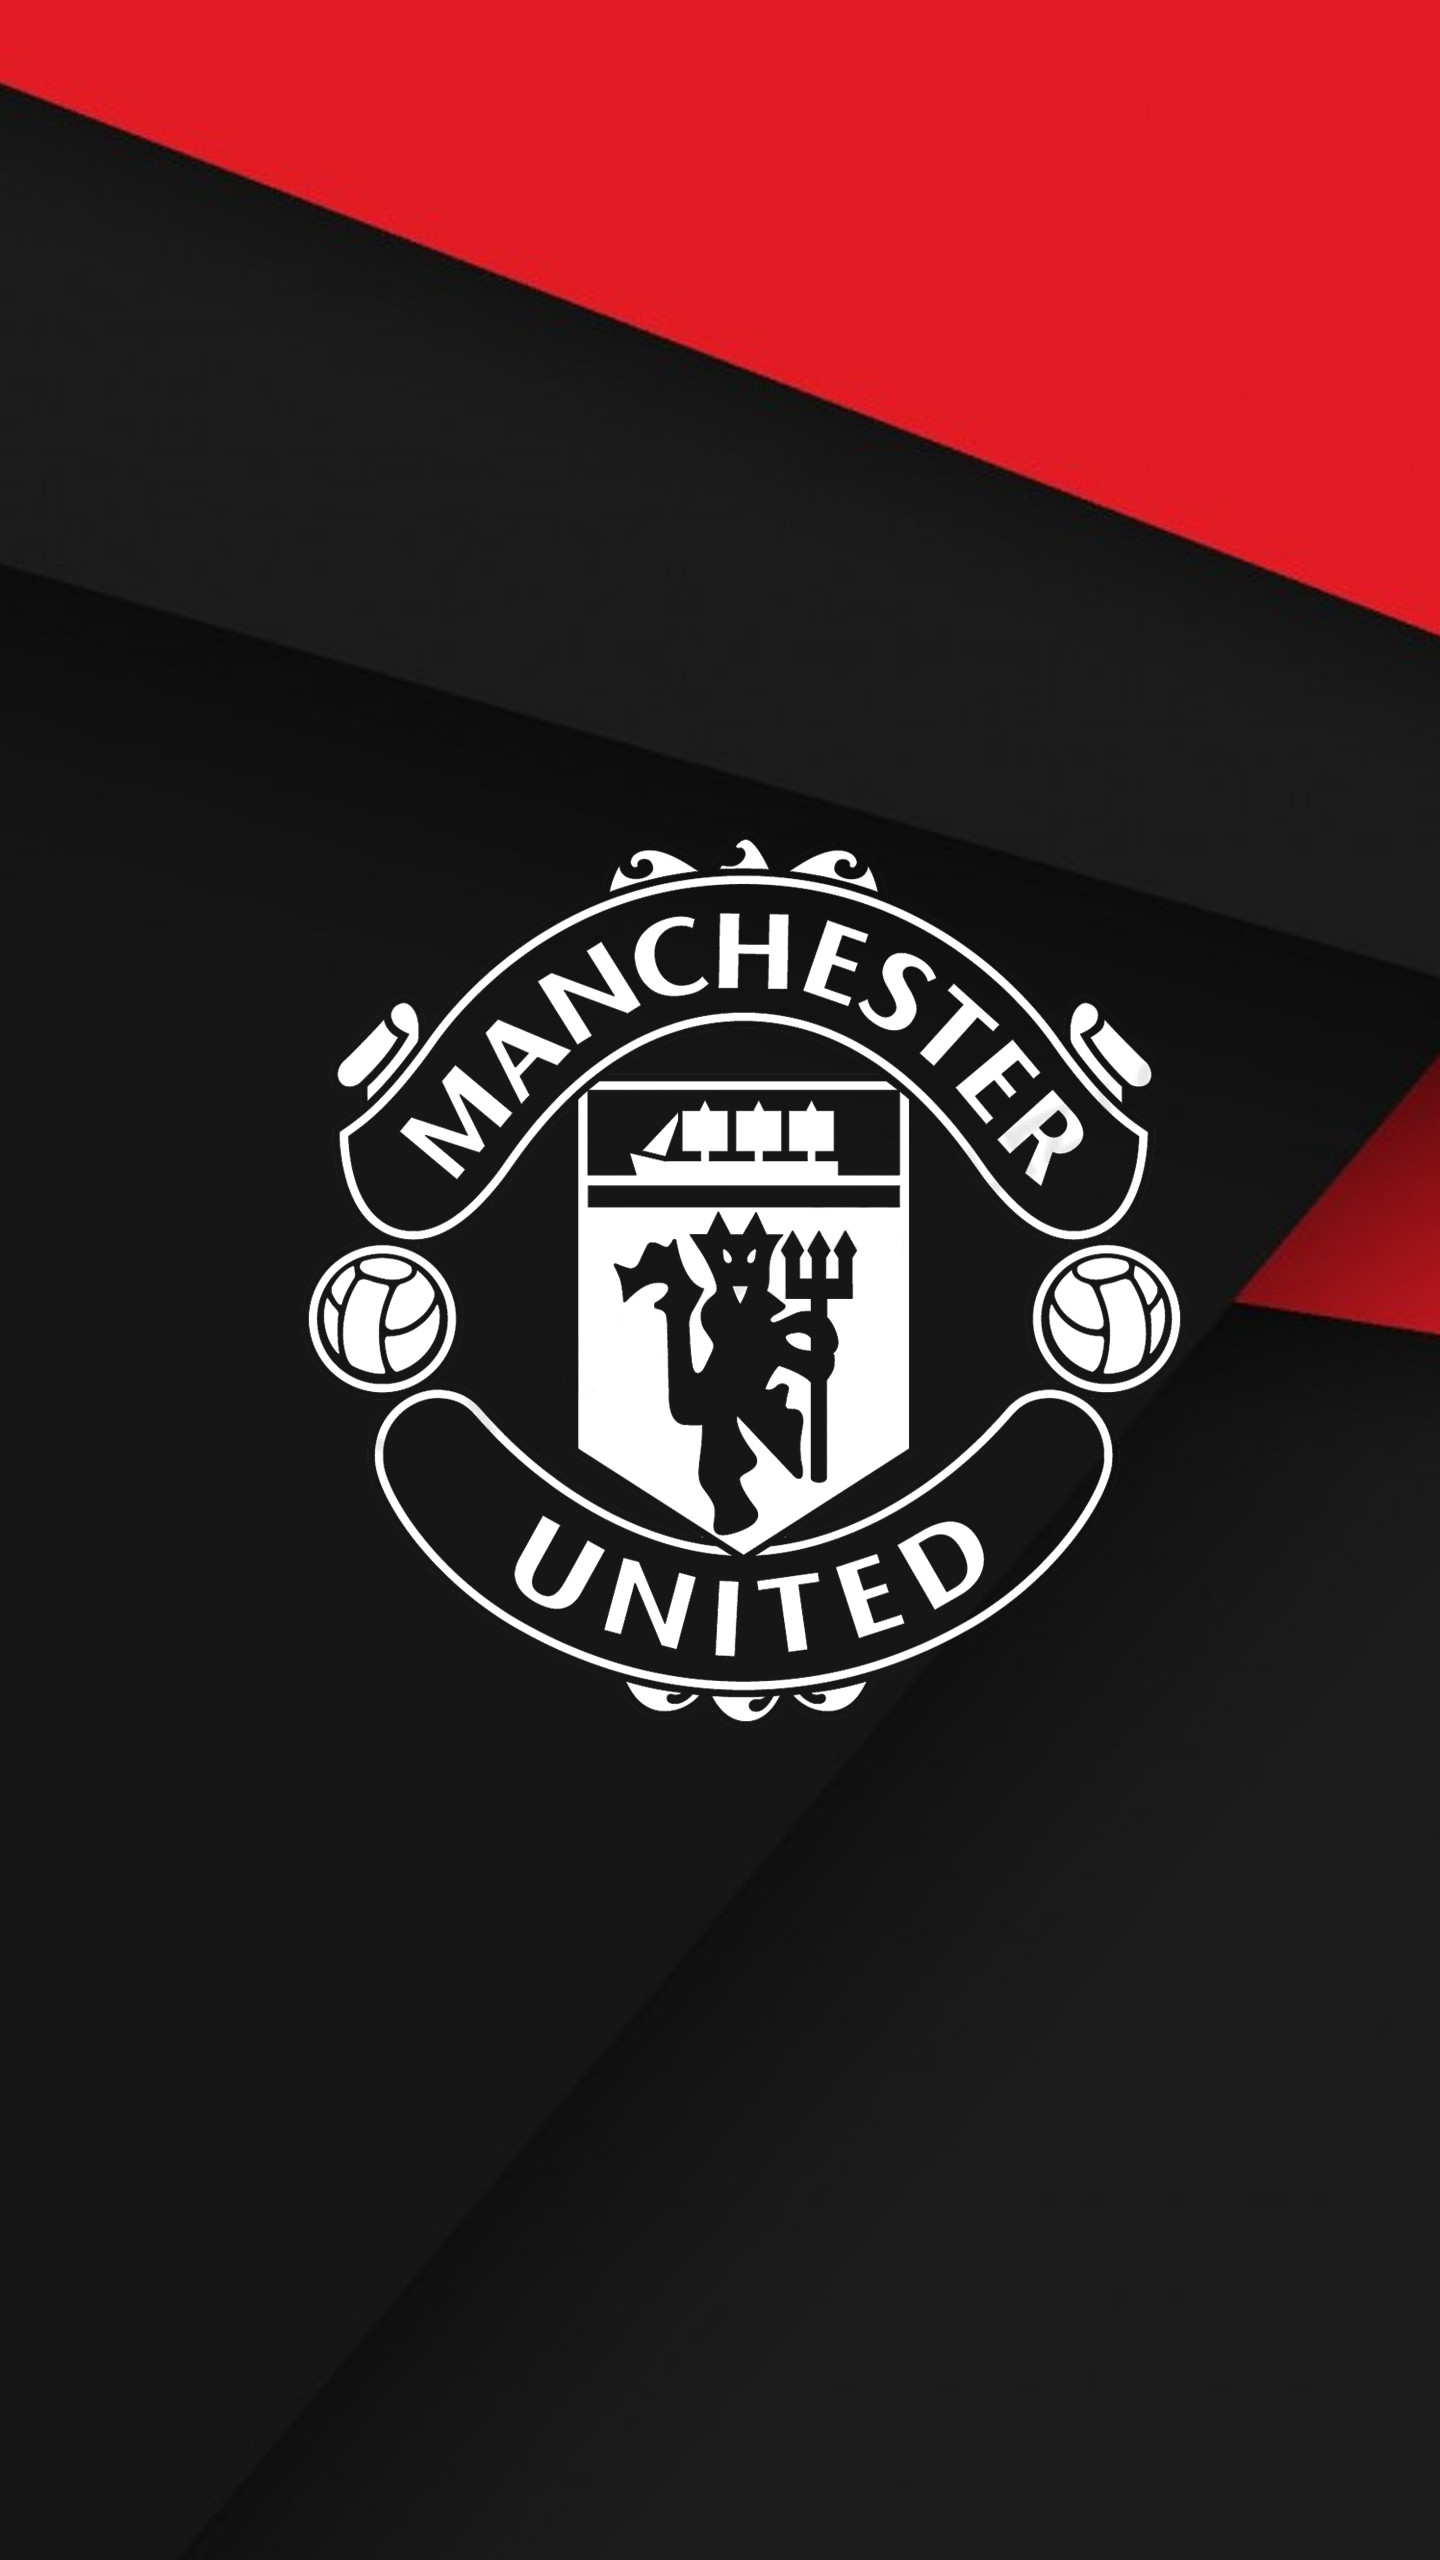 Man utd wallpapers 2018 68 images - Cool man united wallpapers ...